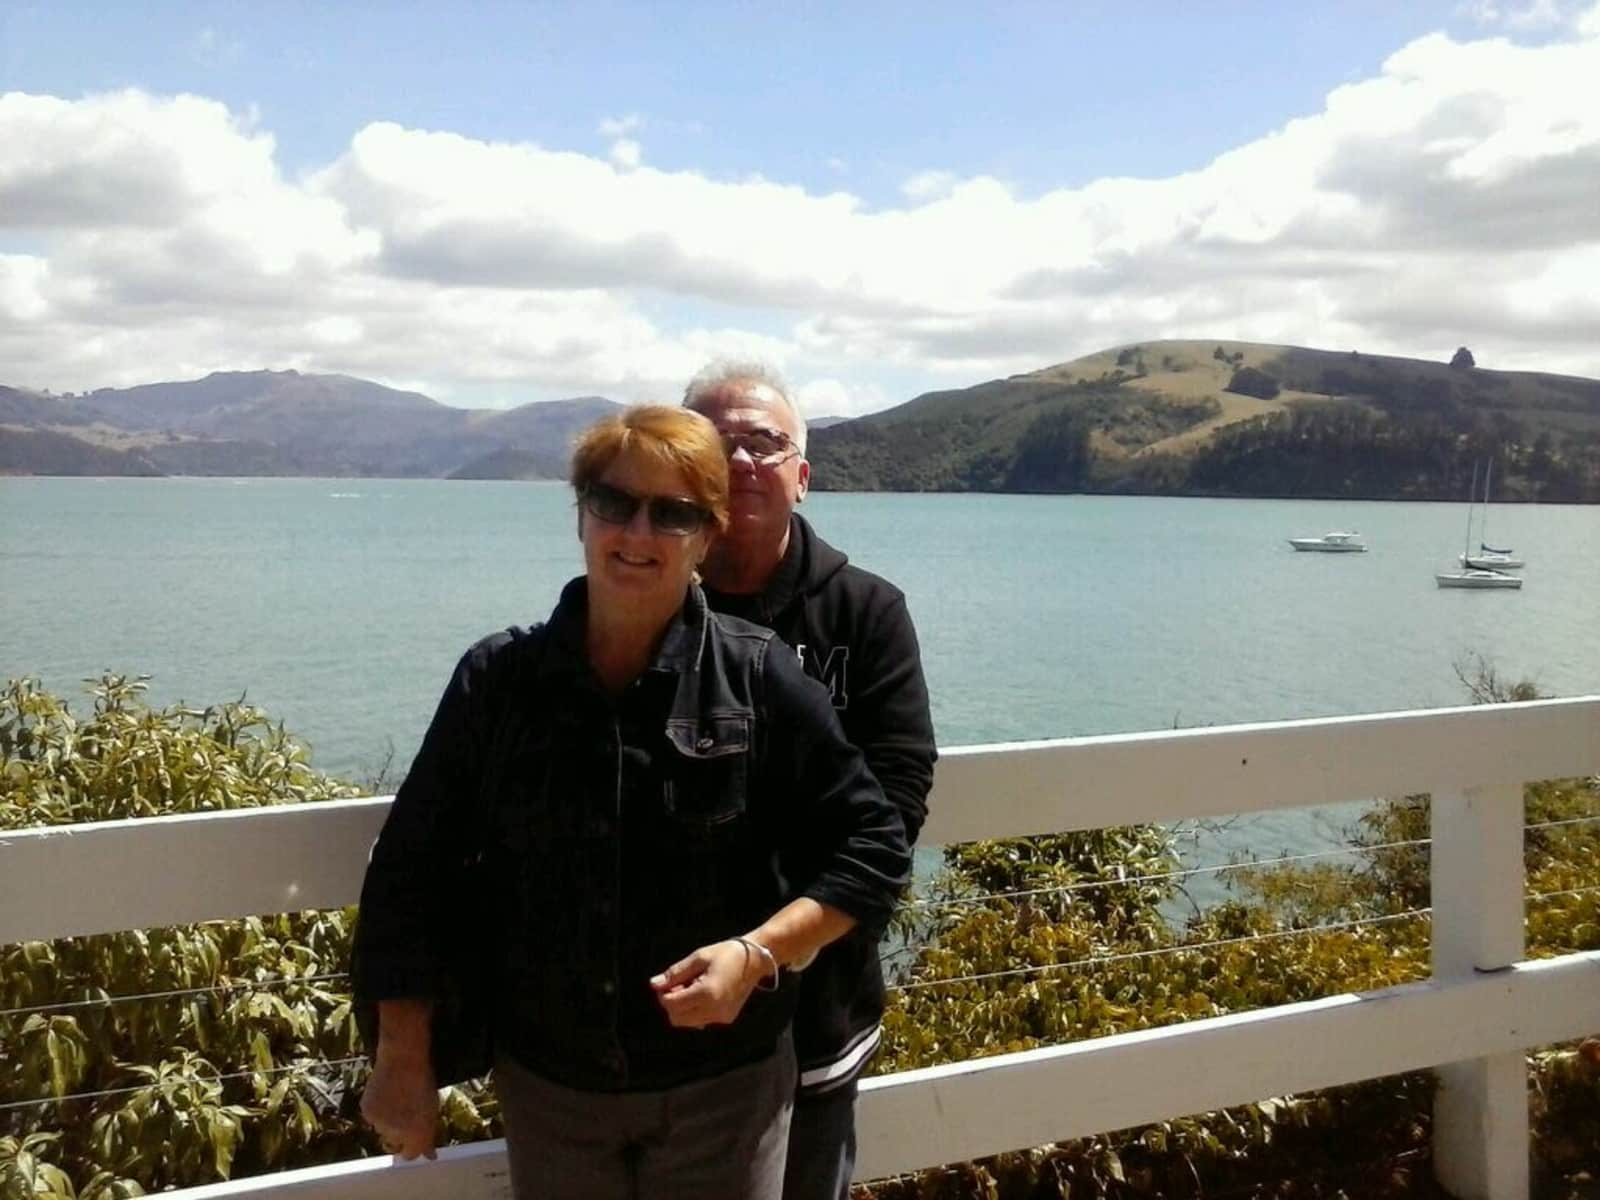 John & Carole from Christchurch, New Zealand